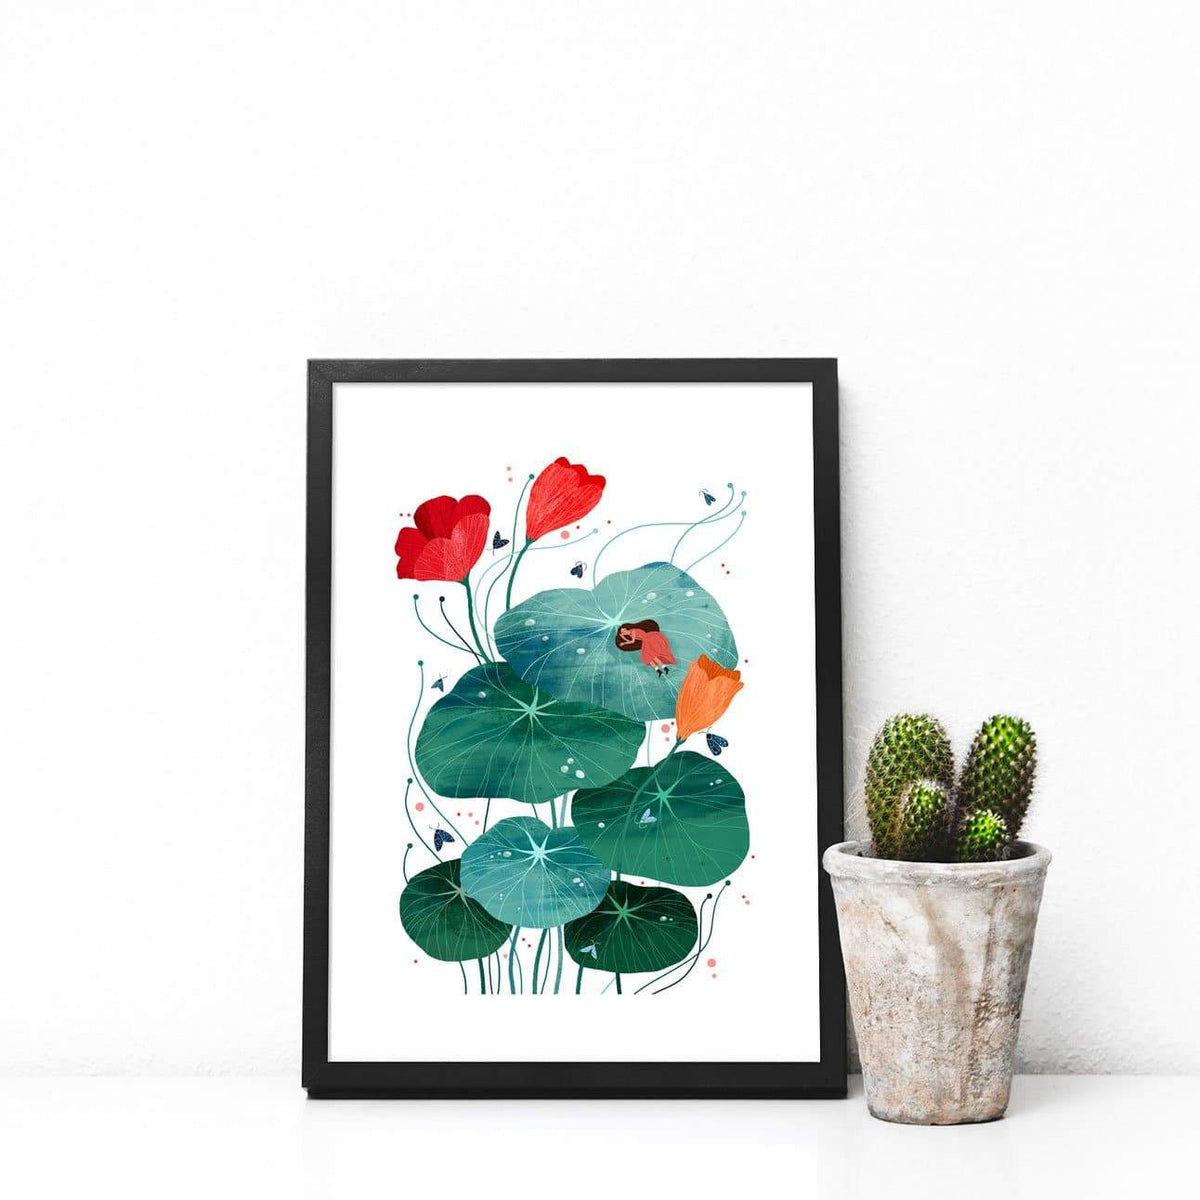 Nasturtium Illustration Print-Illustration-Hello Grimes-A4-Totem Store